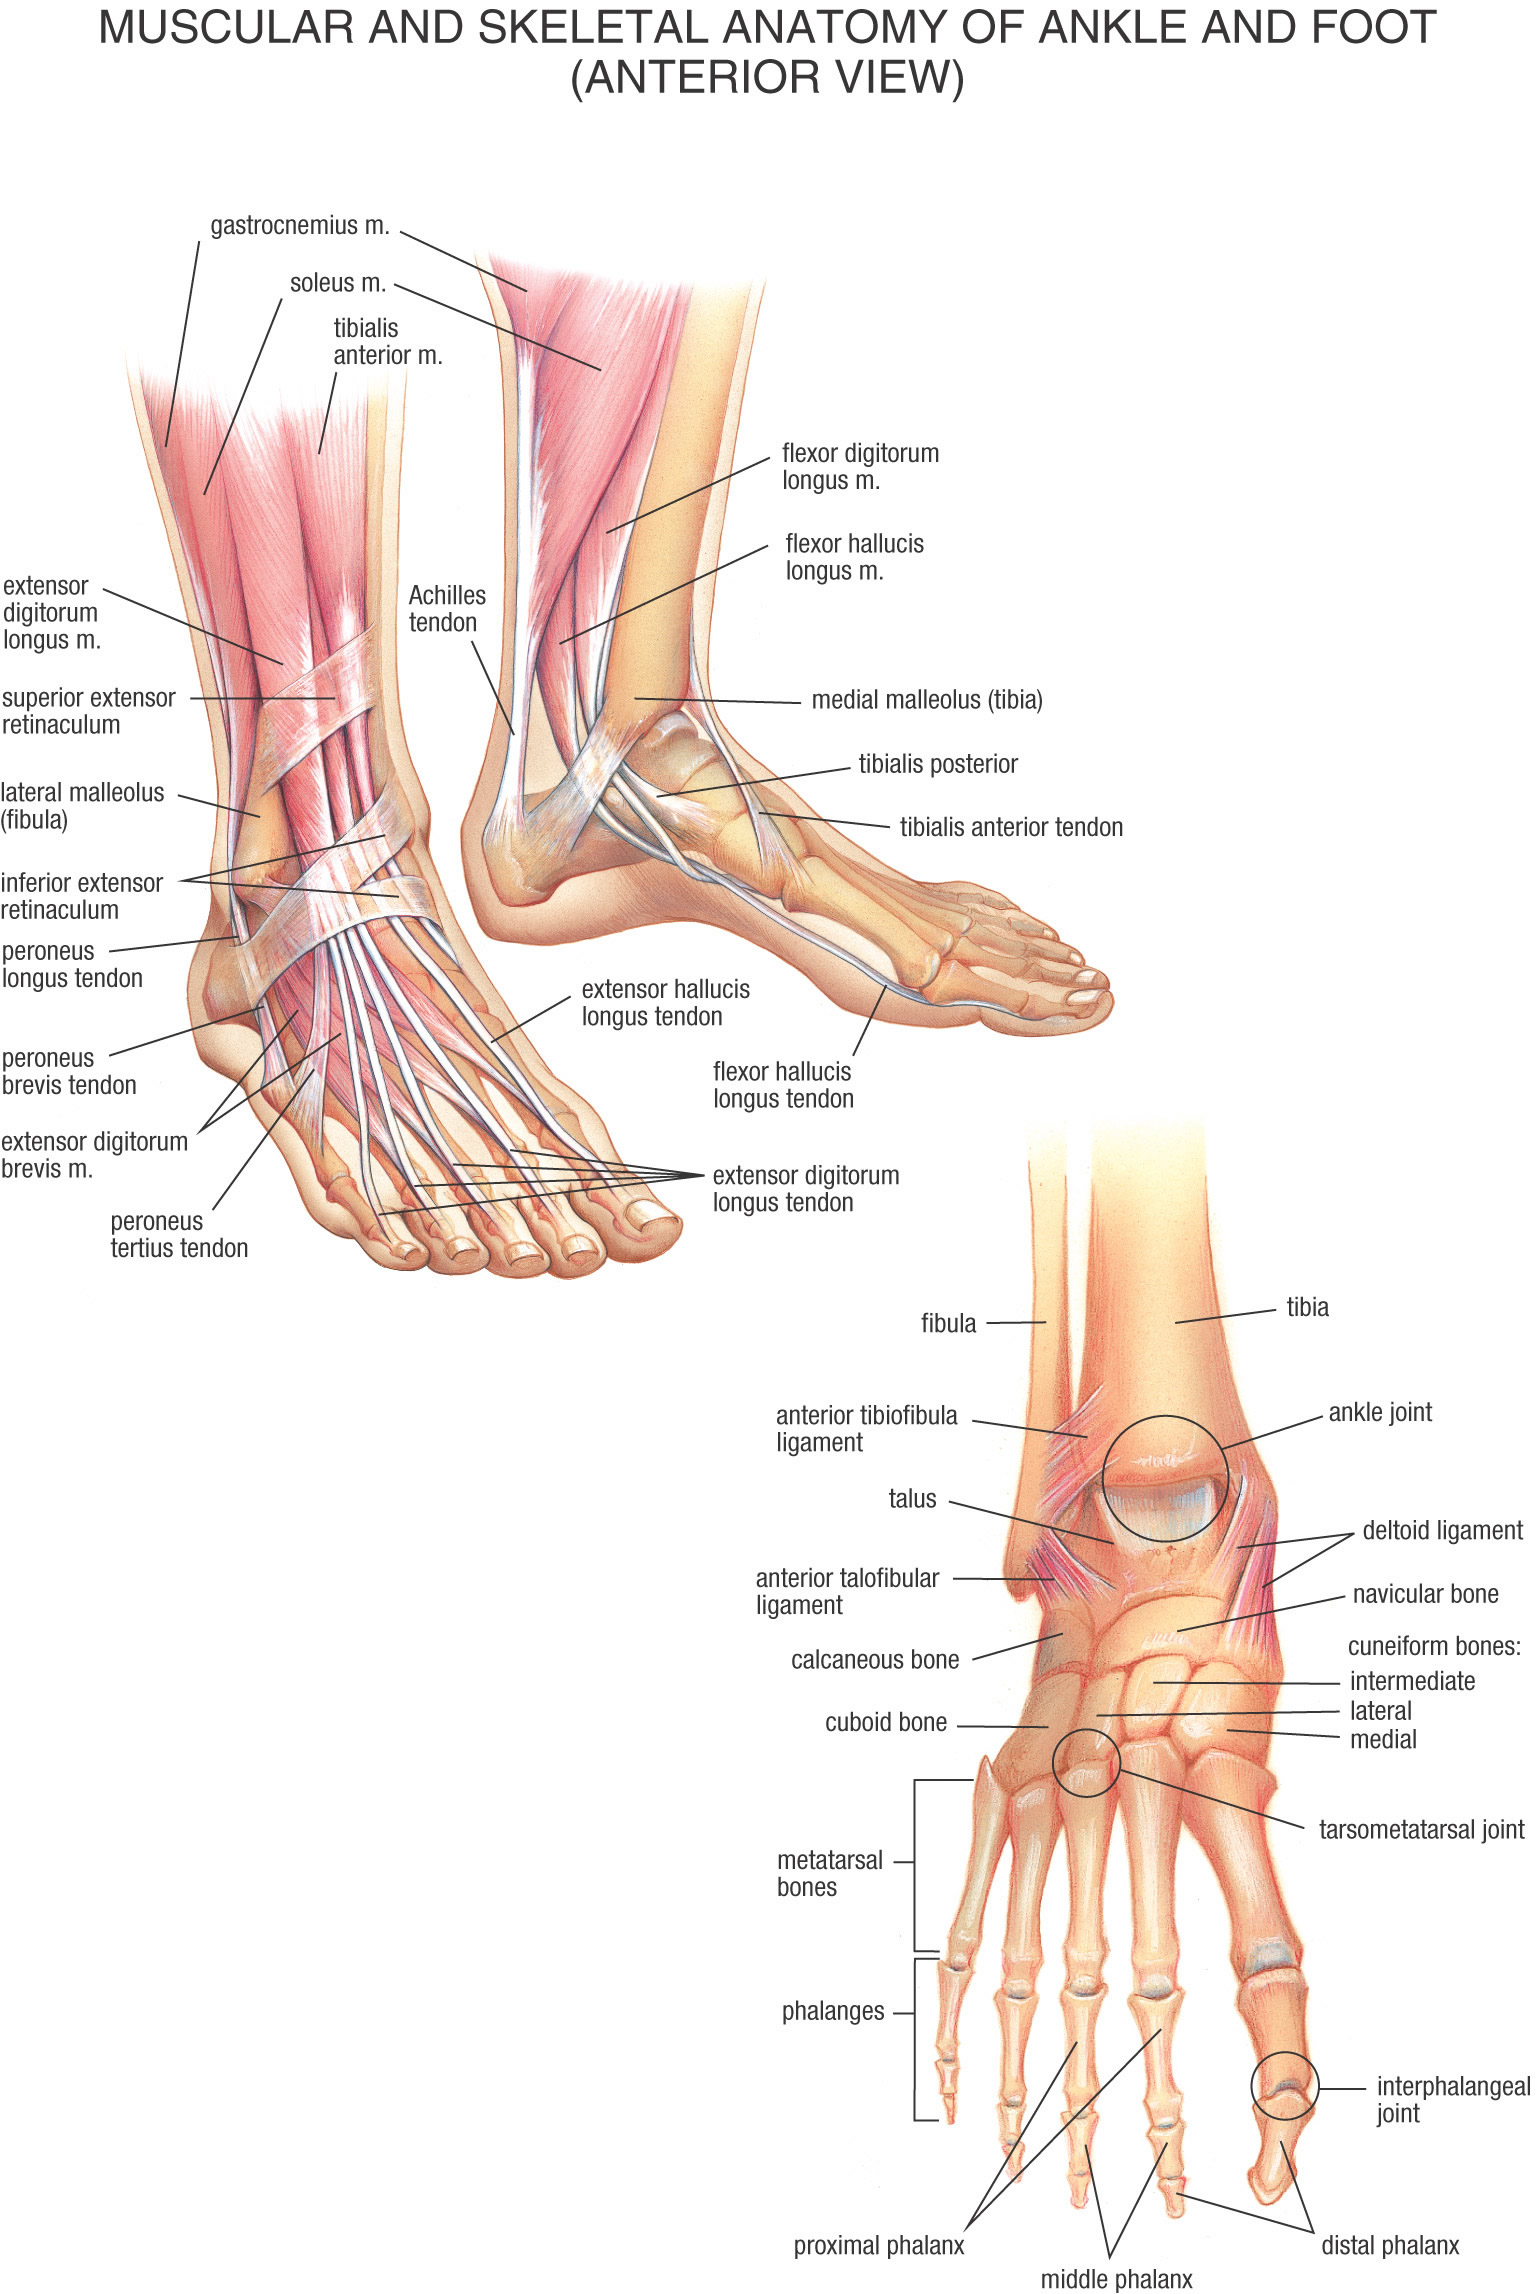 Skeletal anatomy of the foot